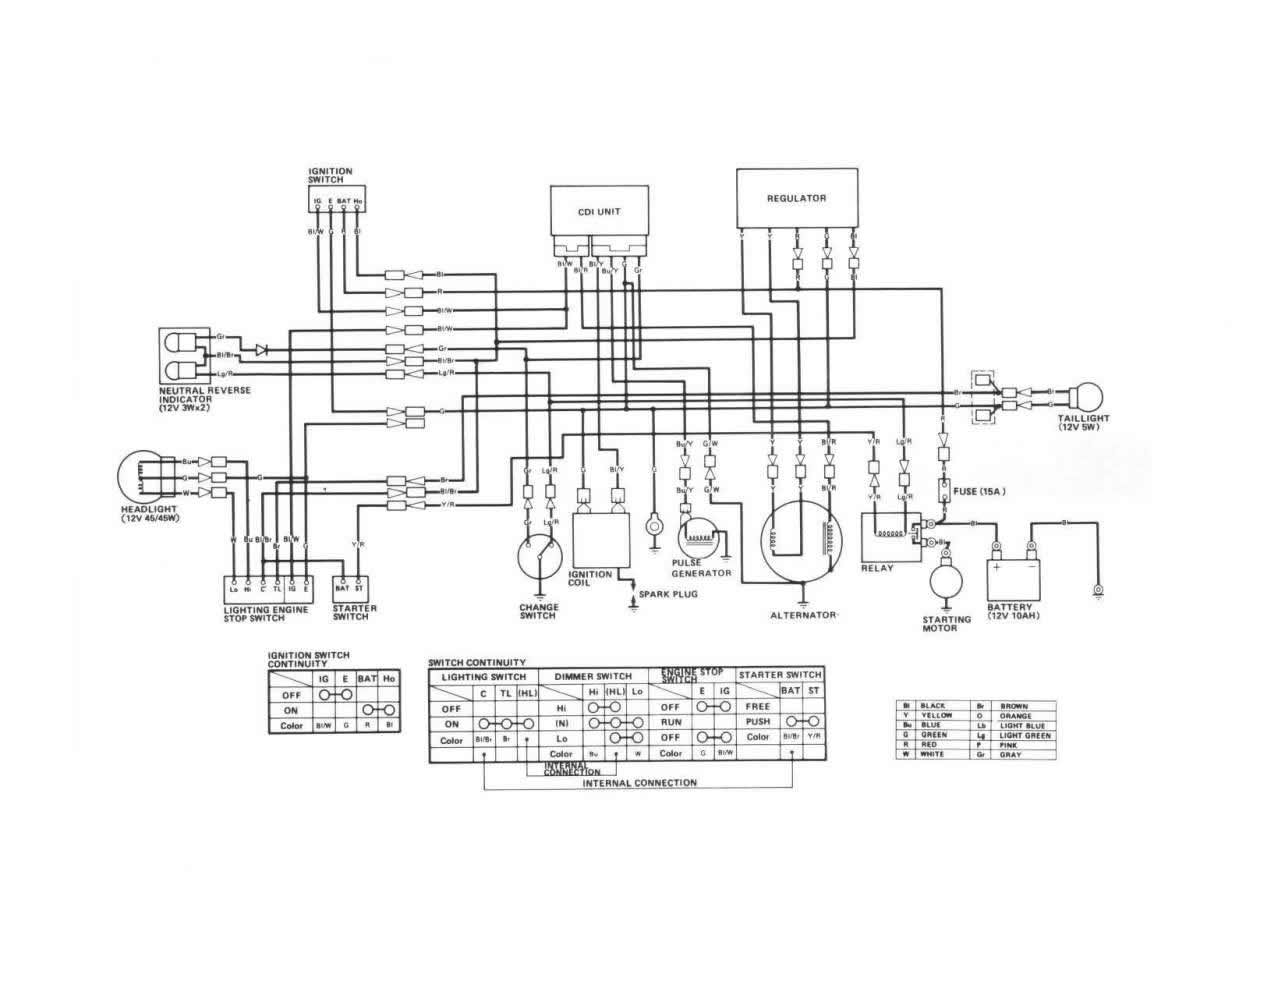 Diagram Wiring Diagram For 1987 Honda Trx 125